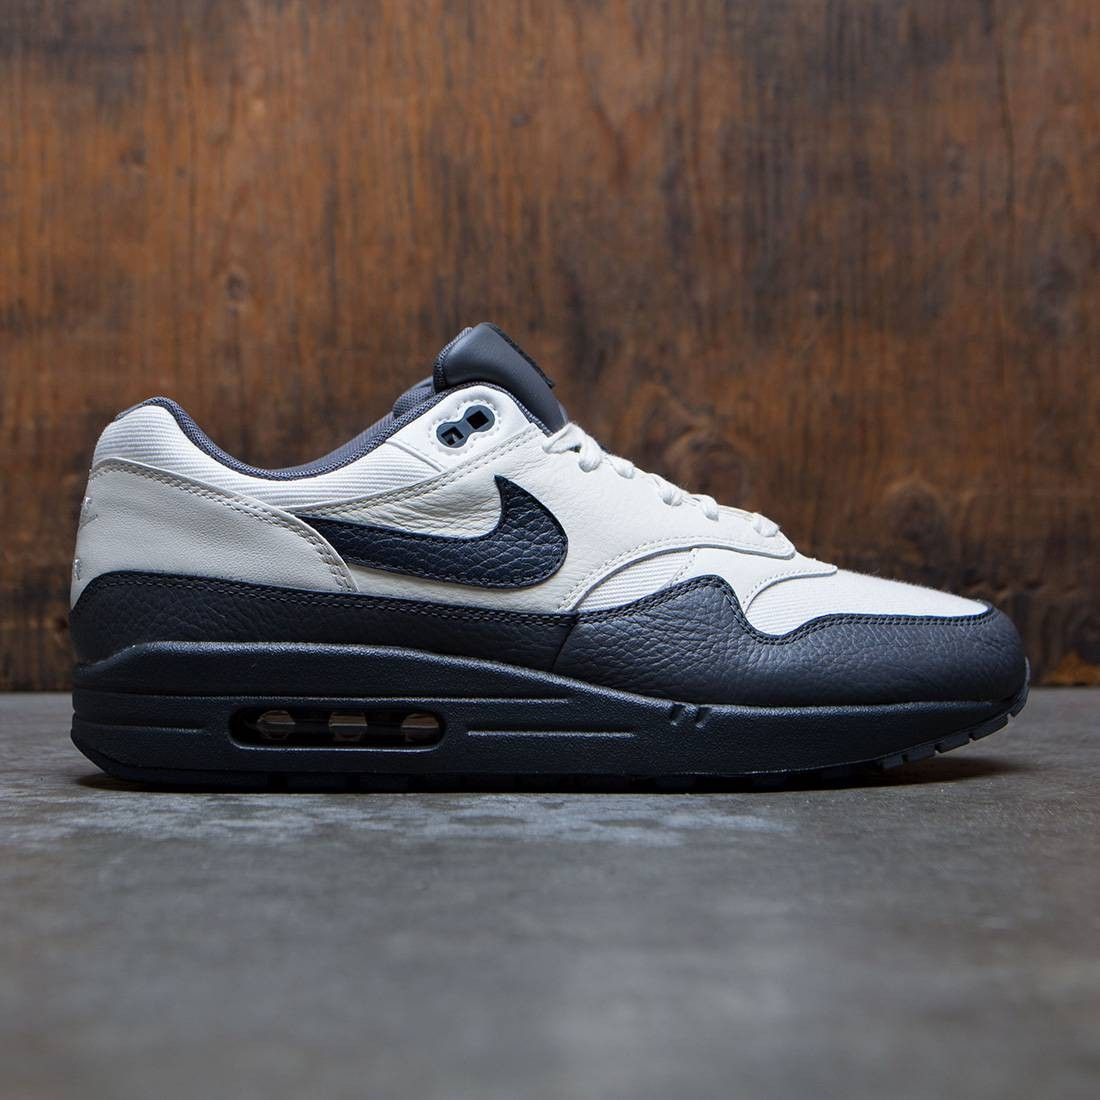 482a7a227c46 nike men air max 1 premium sail dark obsidian dark grey